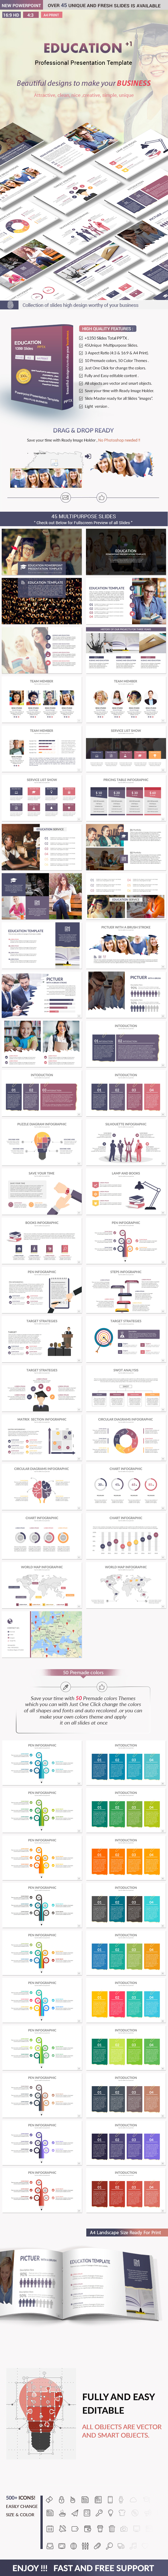 Education powerpoint presentation template by rengstudio education powerpoint presentation template business powerpoint templates toneelgroepblik Images